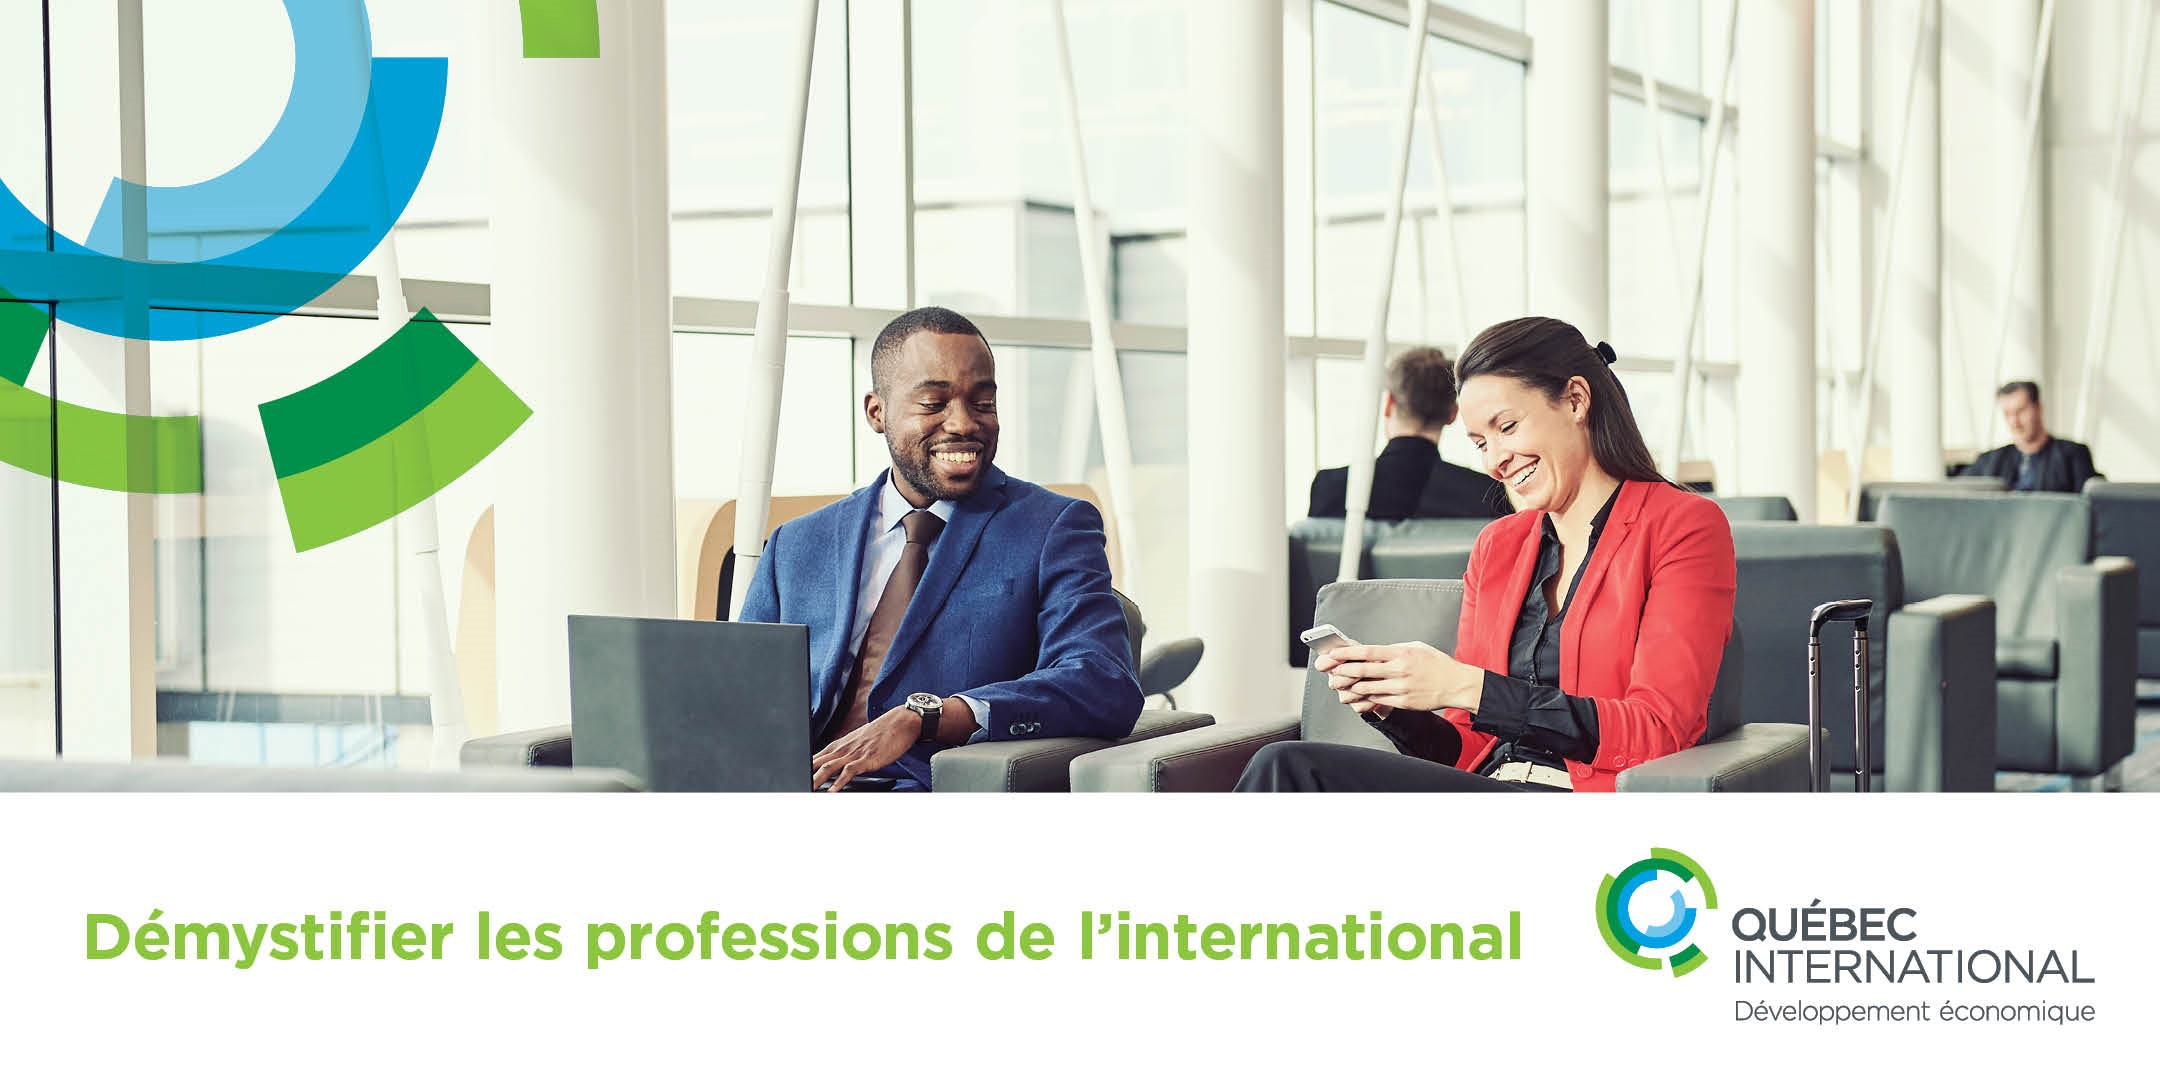 Démystifier les professions de l'international